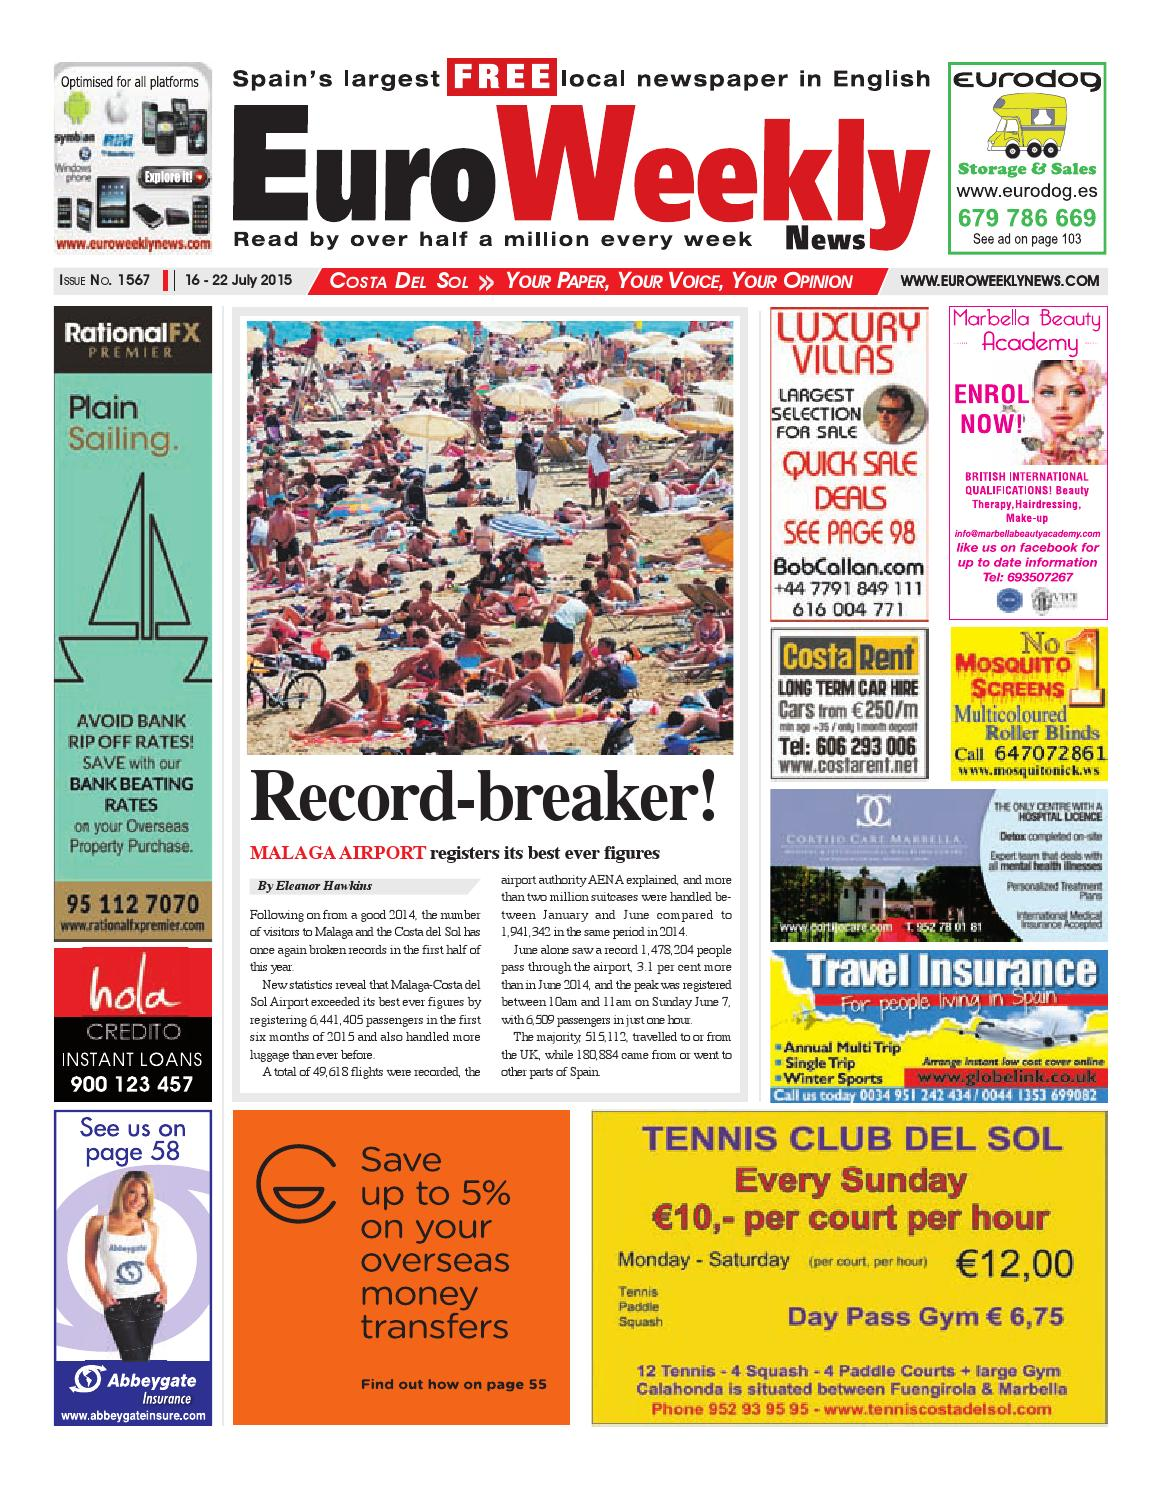 Euro Weekly News - Costa del Sol 16 - 22 July 2015 Issue 1567 by ... 7a82a669eca